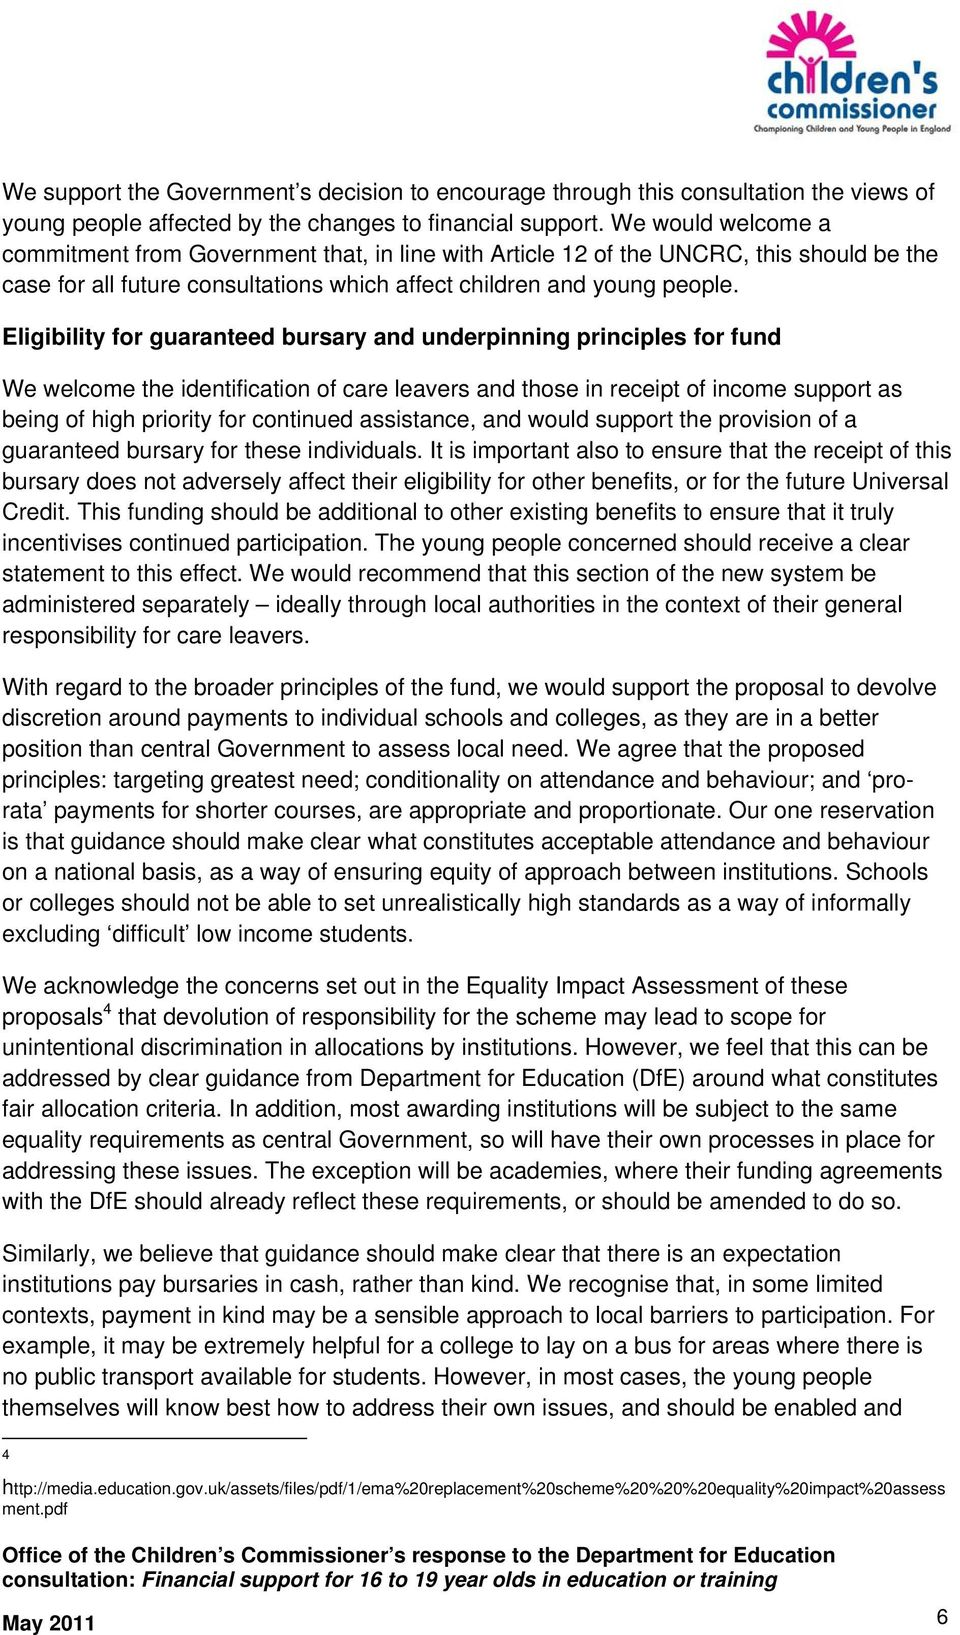 Eligibility for guaranteed bursary and underpinning principles for fund We welcome the identification of care leavers and those in receipt of income support as being of high priority for continued